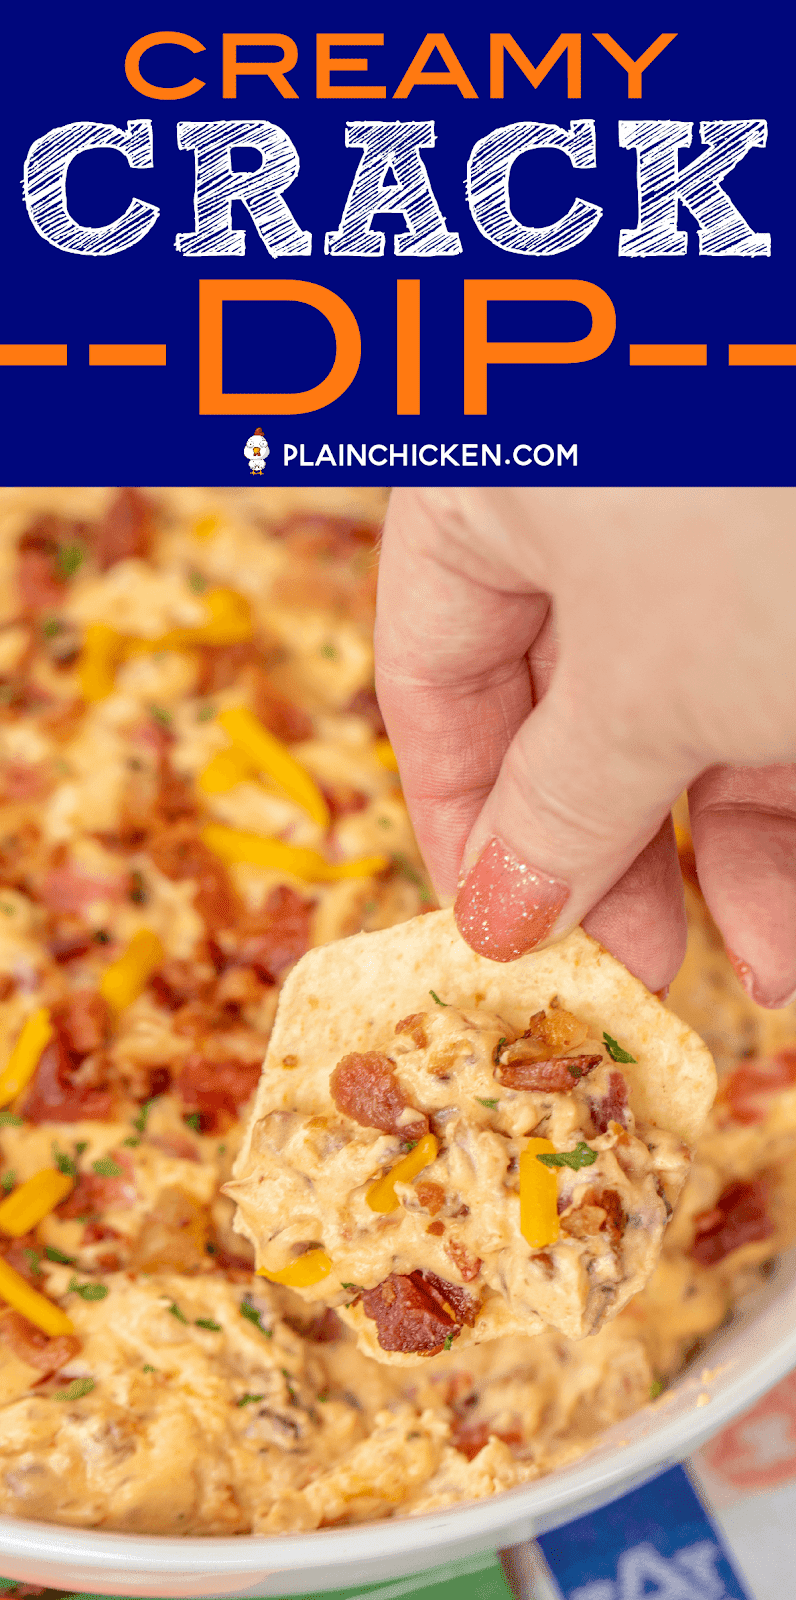 Creamy Crack Dip - only 5 simple ingredients! Great for parties and watching football!! Bacon, cream cheese, cheddar cheese, Ranch dressing mix and milk. I took this to a party and it was gone in a flash. Everyone asked for the recipe. Serve with chips or veggies. #dip #superbowl #bacon #appetizer